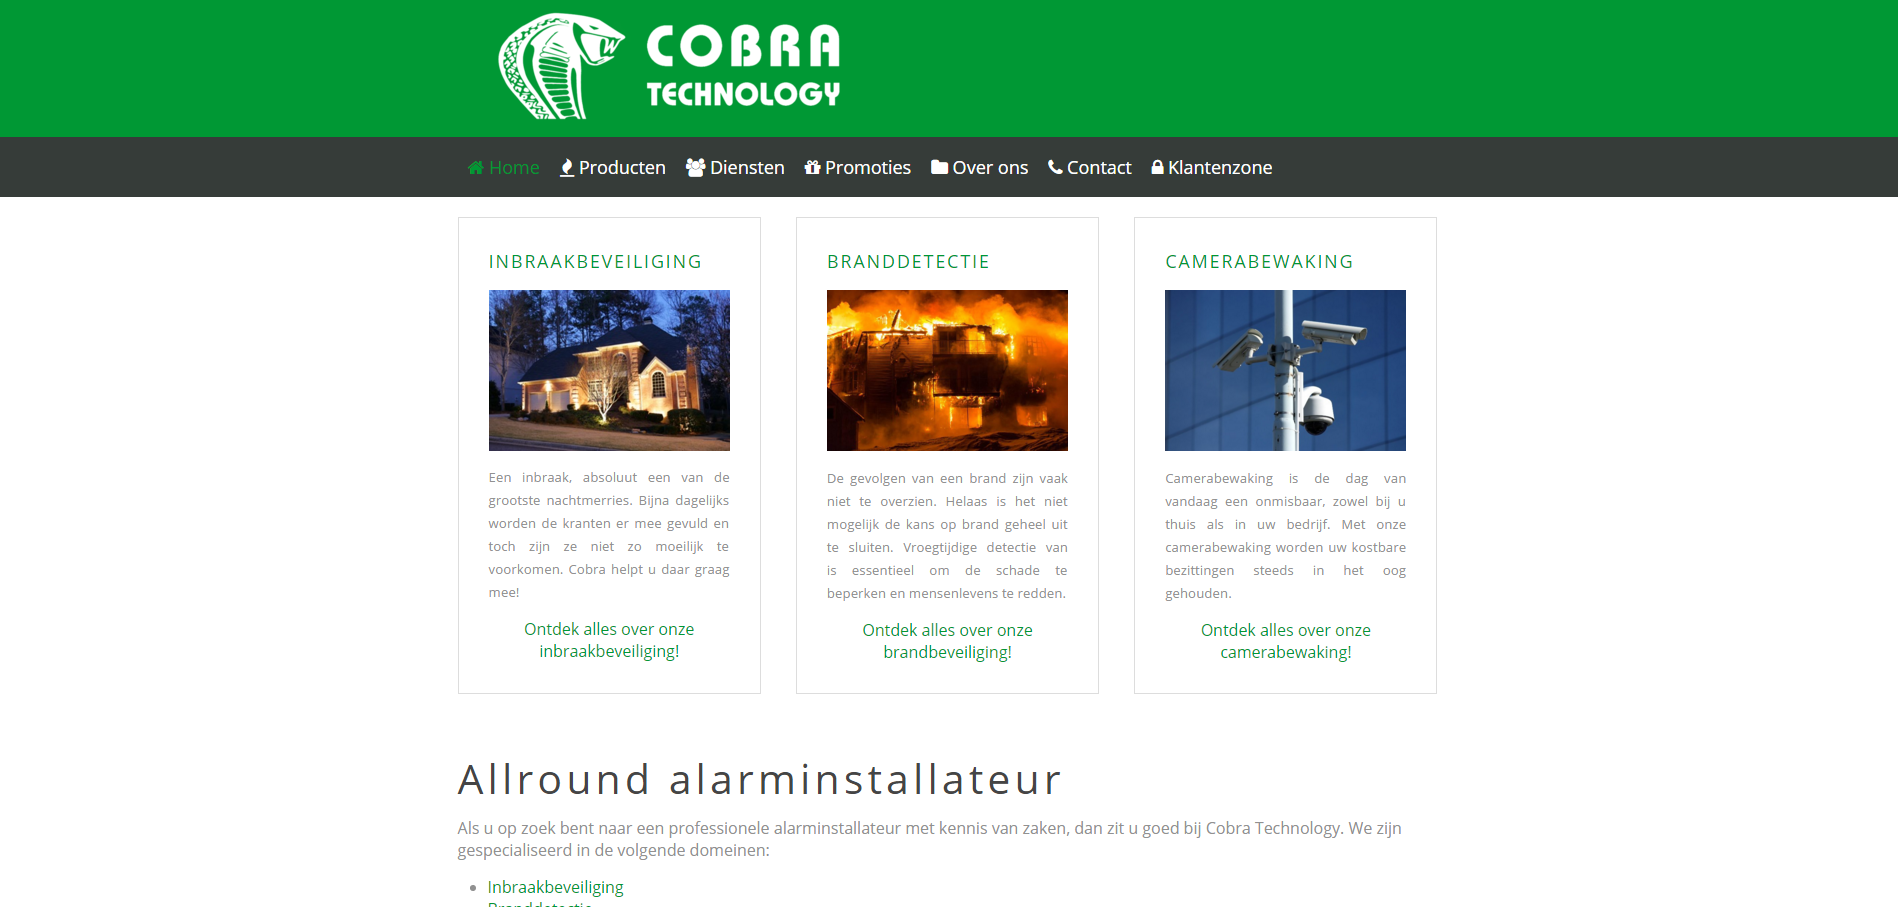 Cobra Technology - Alarminstallateur